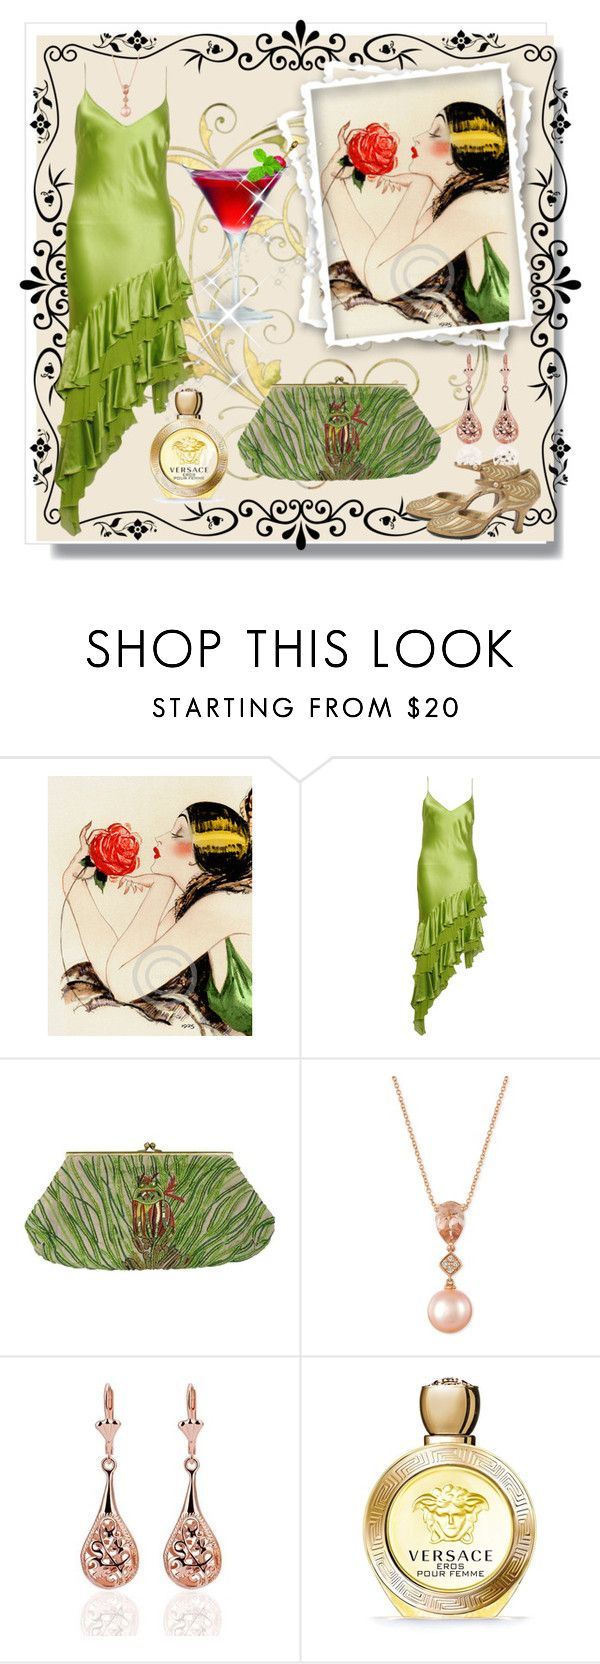 """""""Golden times"""" by natalyapril1976 on Polyvore featuring Iceberg, LE VIAN, Versace, vintage, retro and artdeco"""